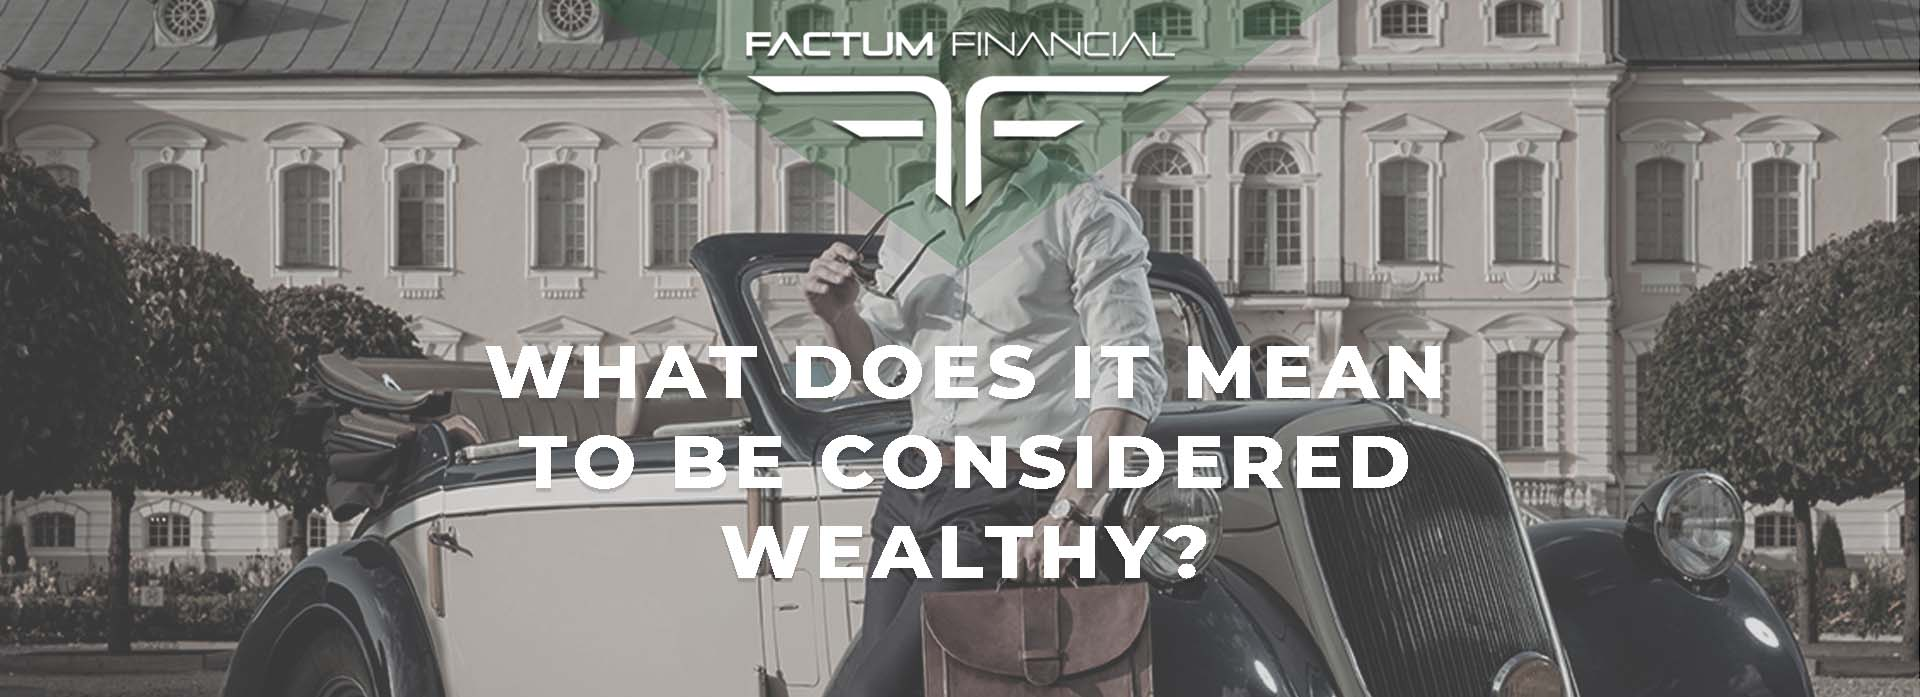 What Does It Mean To Be Considered Wealthy?